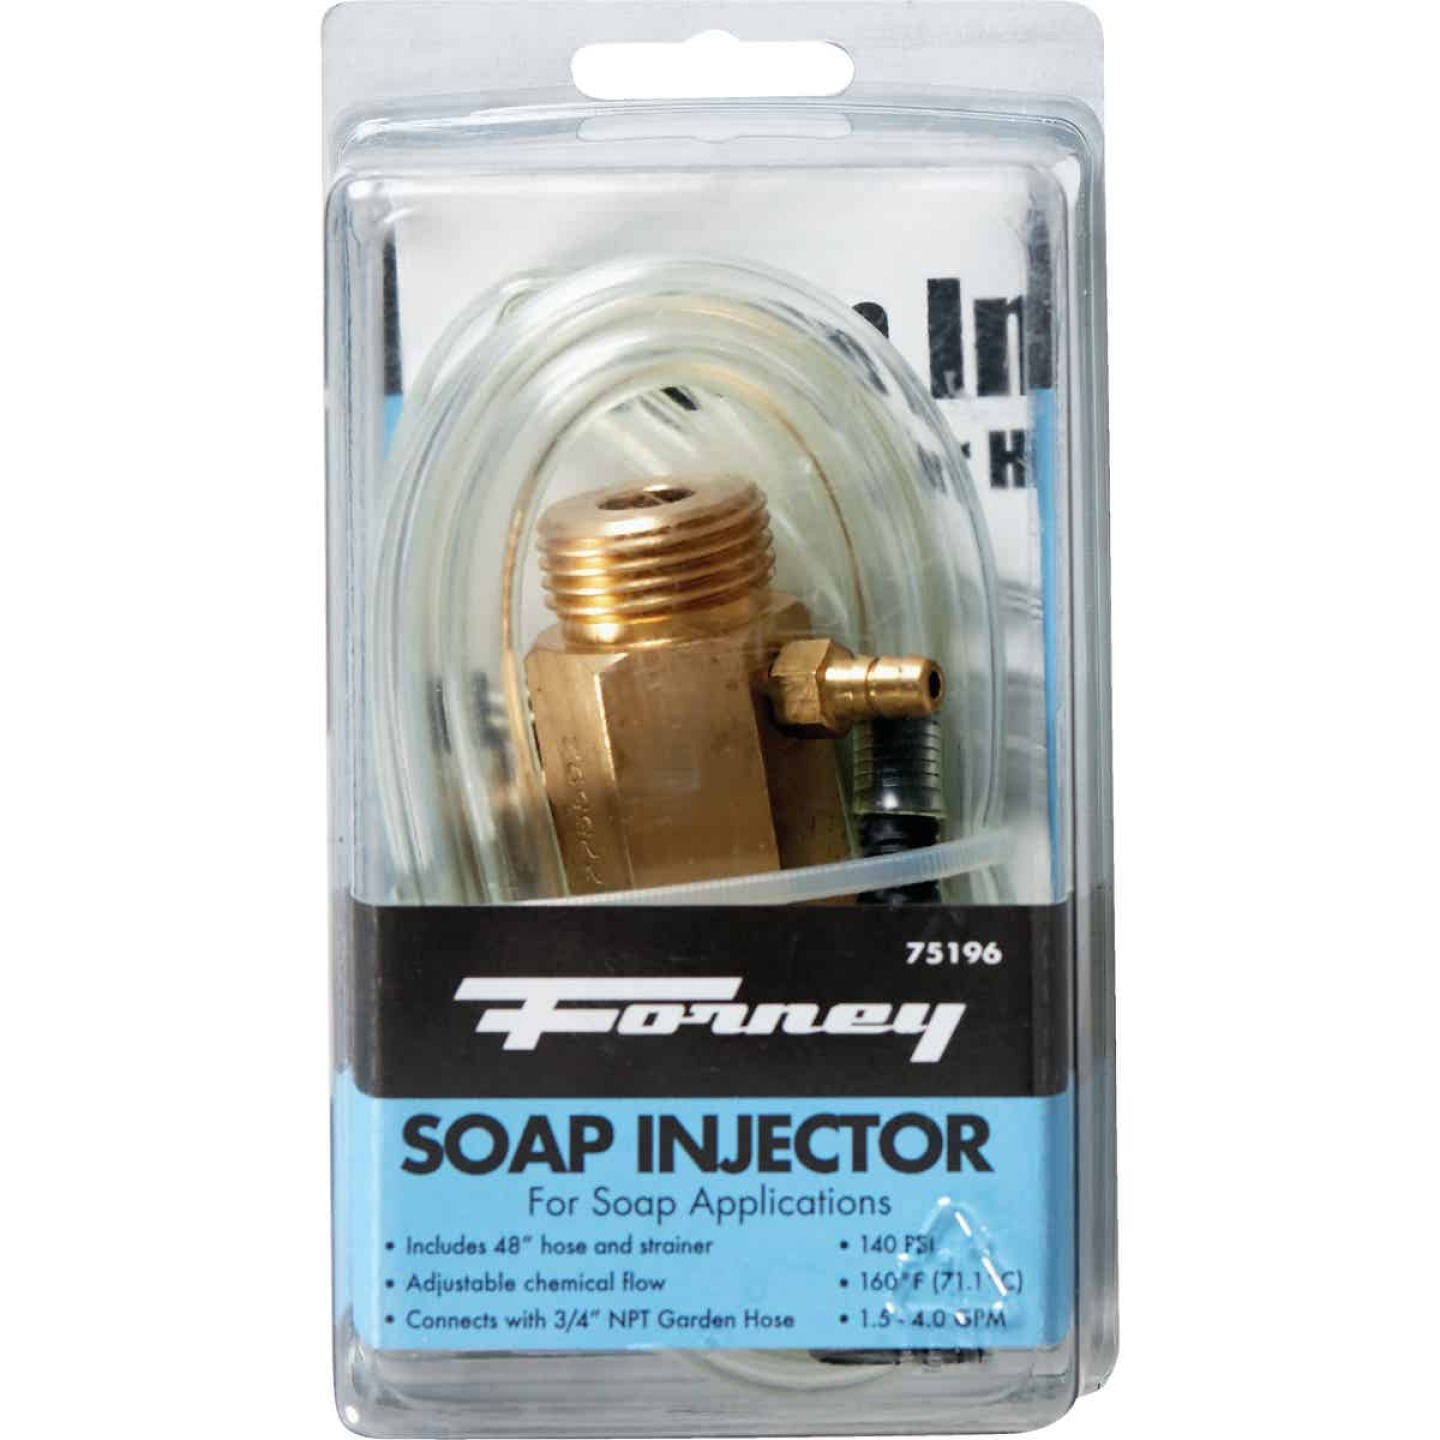 Forney Pressure Washer Detergent Injector with 48 In. Hose Image 2